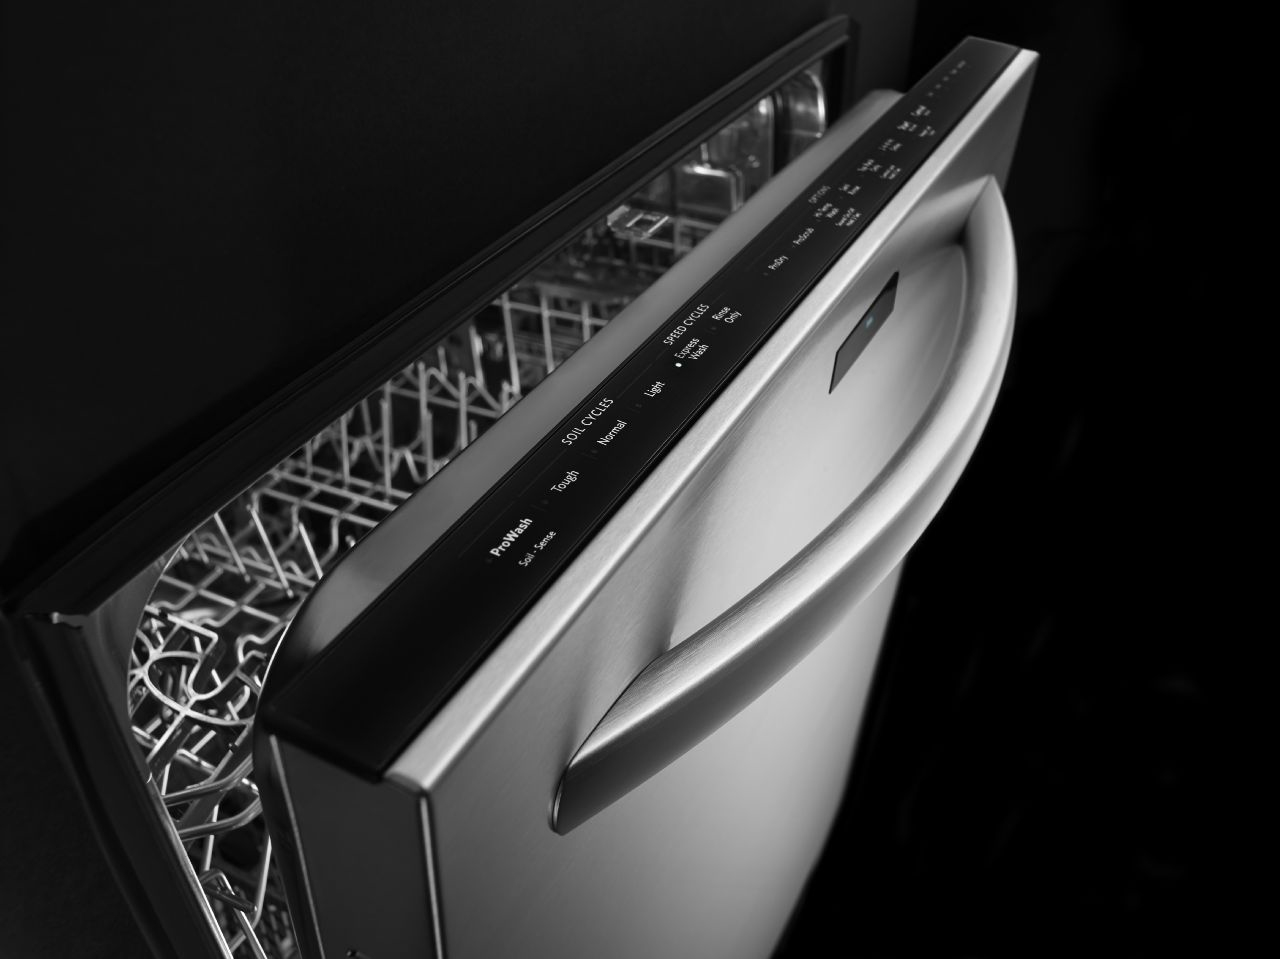 Modern-Dishwashers-with-State-of-the-Art-Features-Picture